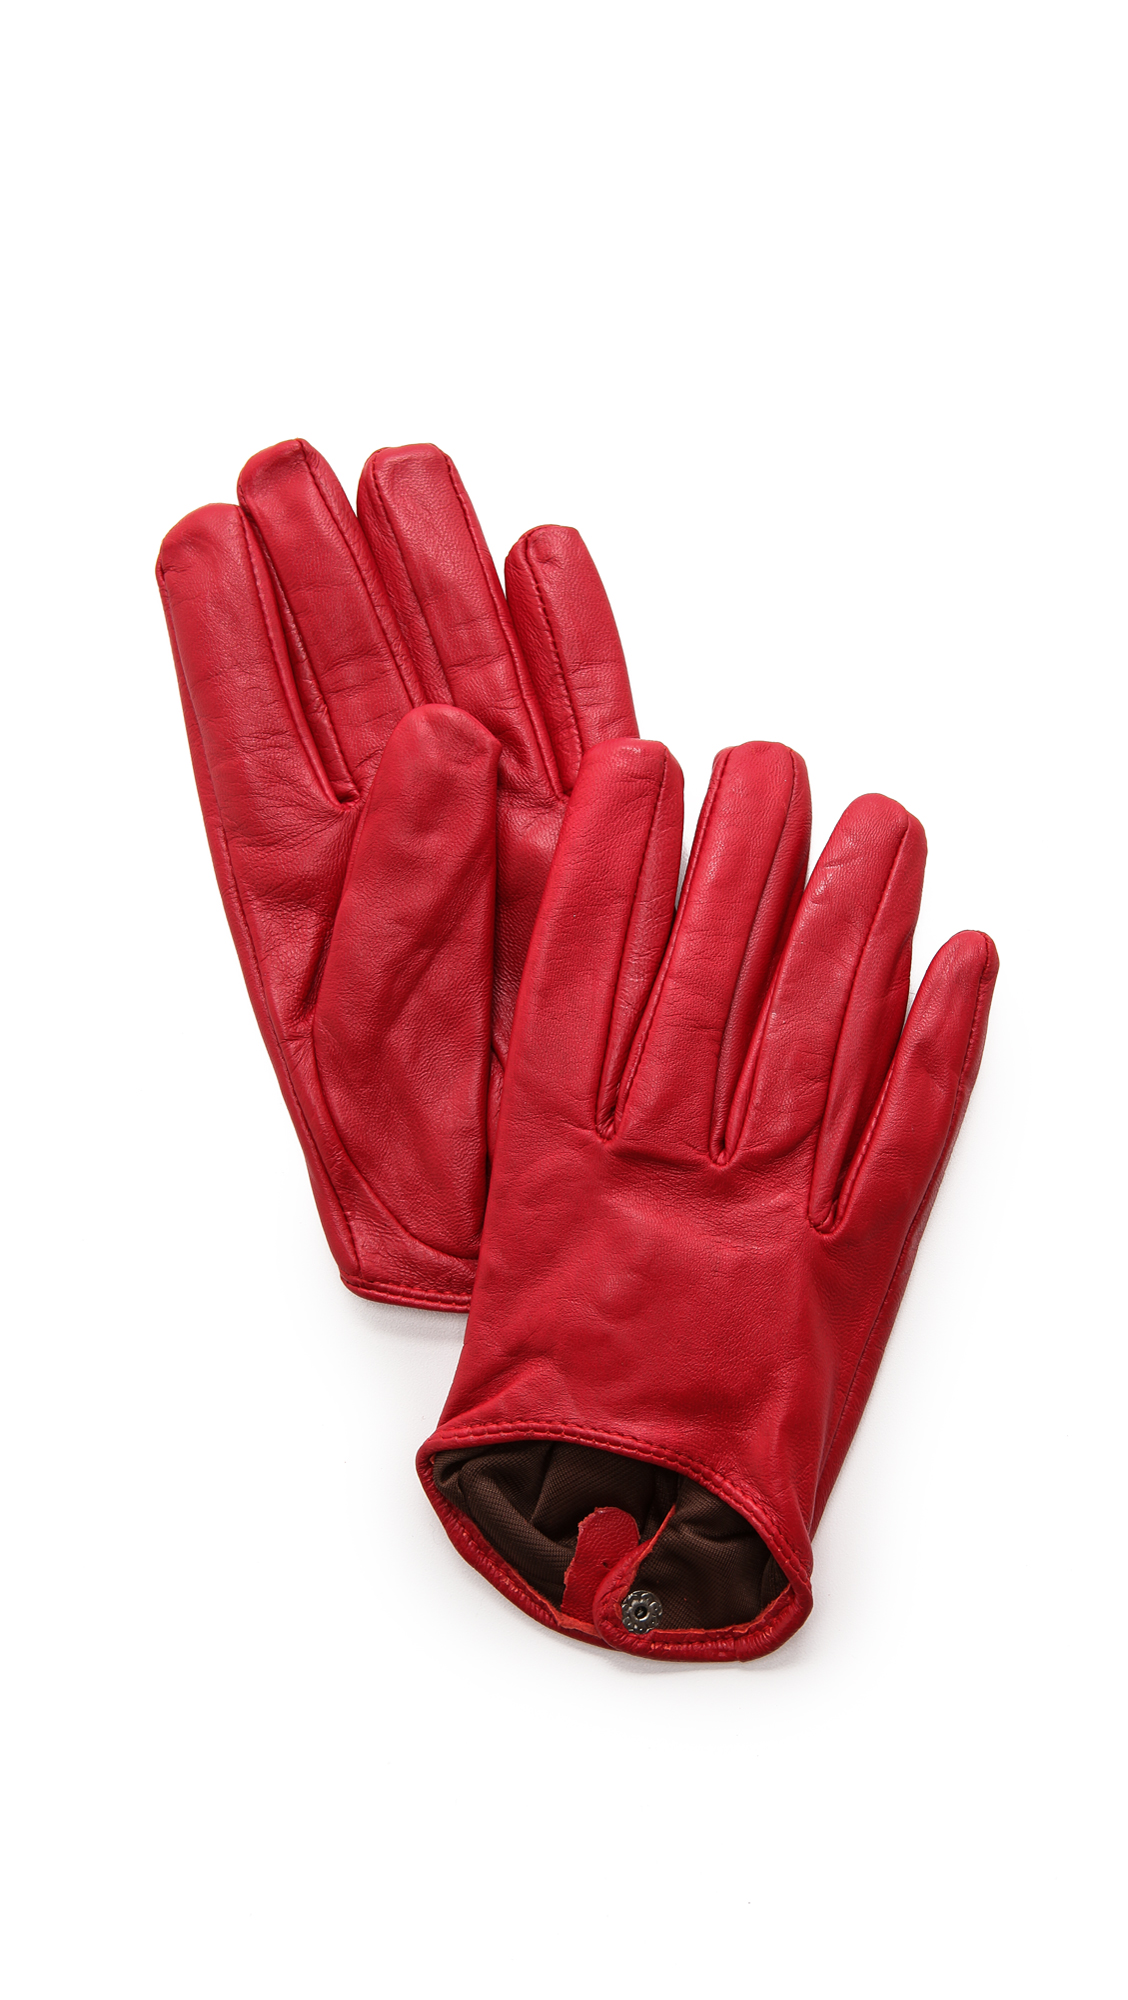 Carolina Amato Short Leather Gloves - Red